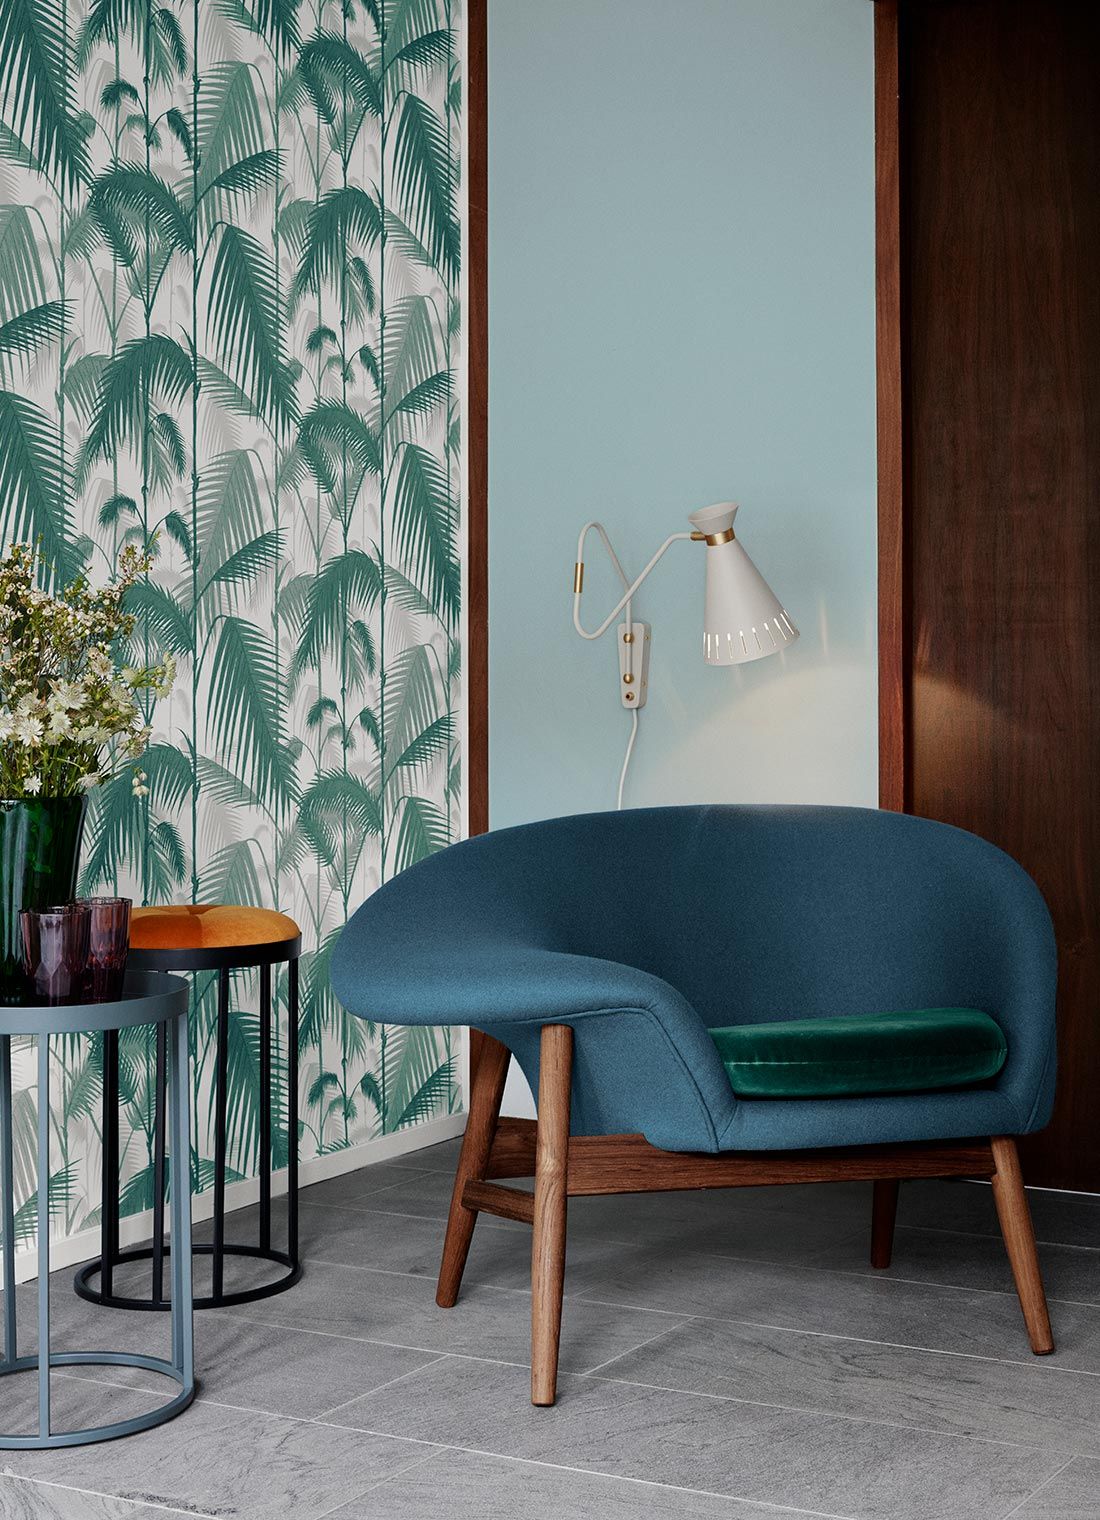 Fried Egg in blue petrol with a green velvet cushion next to Daisy stools and Cone wall lamp.